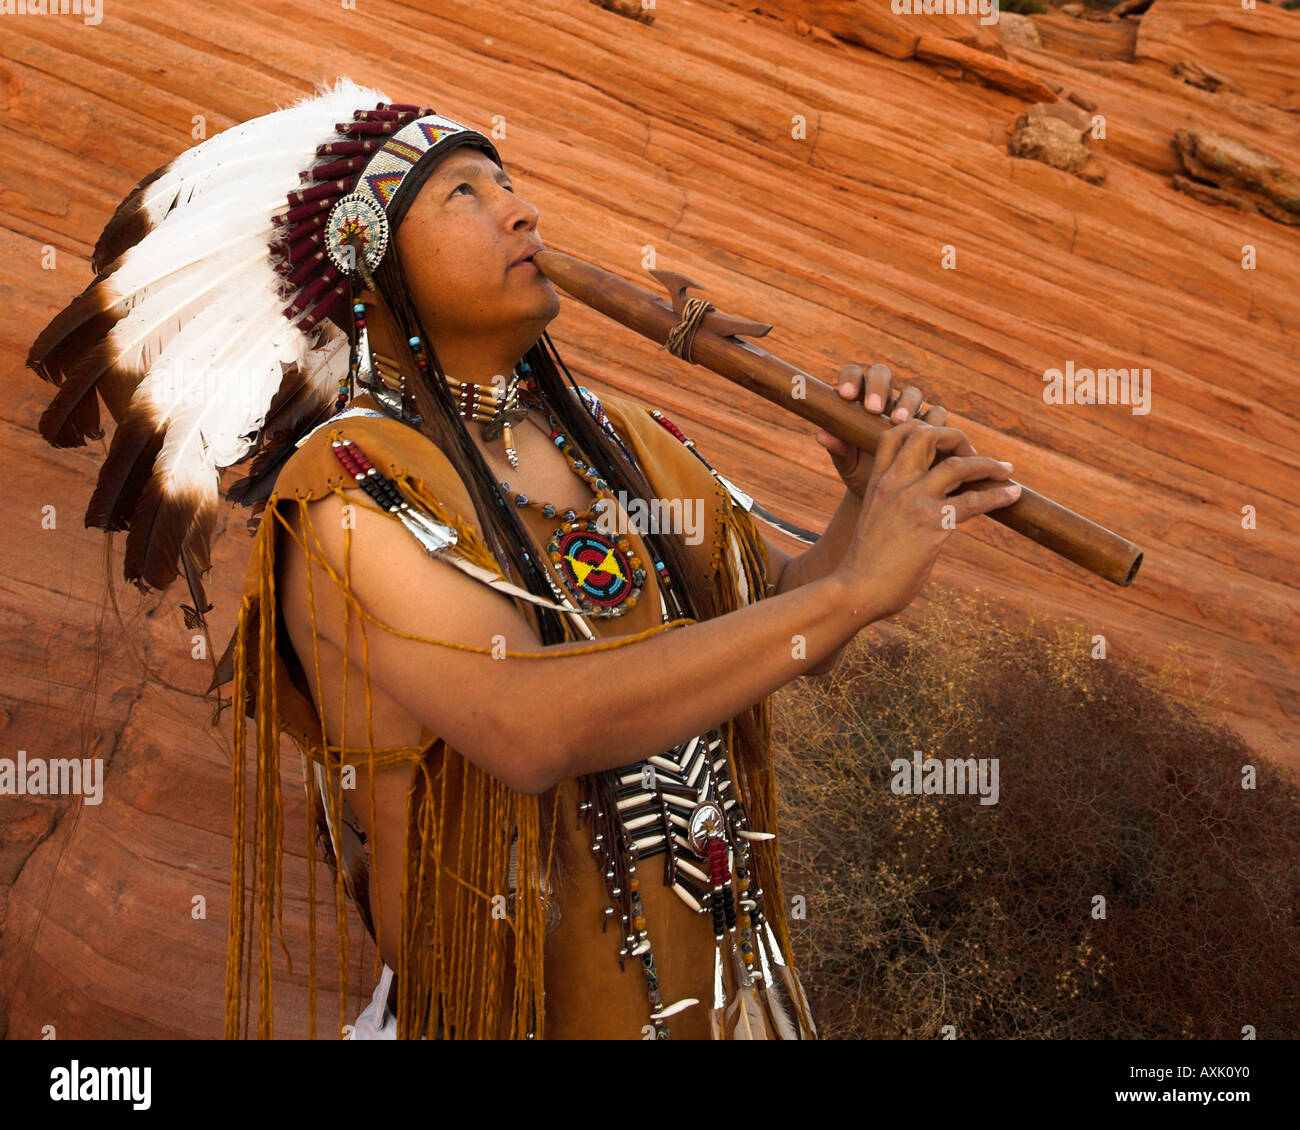 native american indian man person with cultural outfit uniform stock photo royalty free image. Black Bedroom Furniture Sets. Home Design Ideas